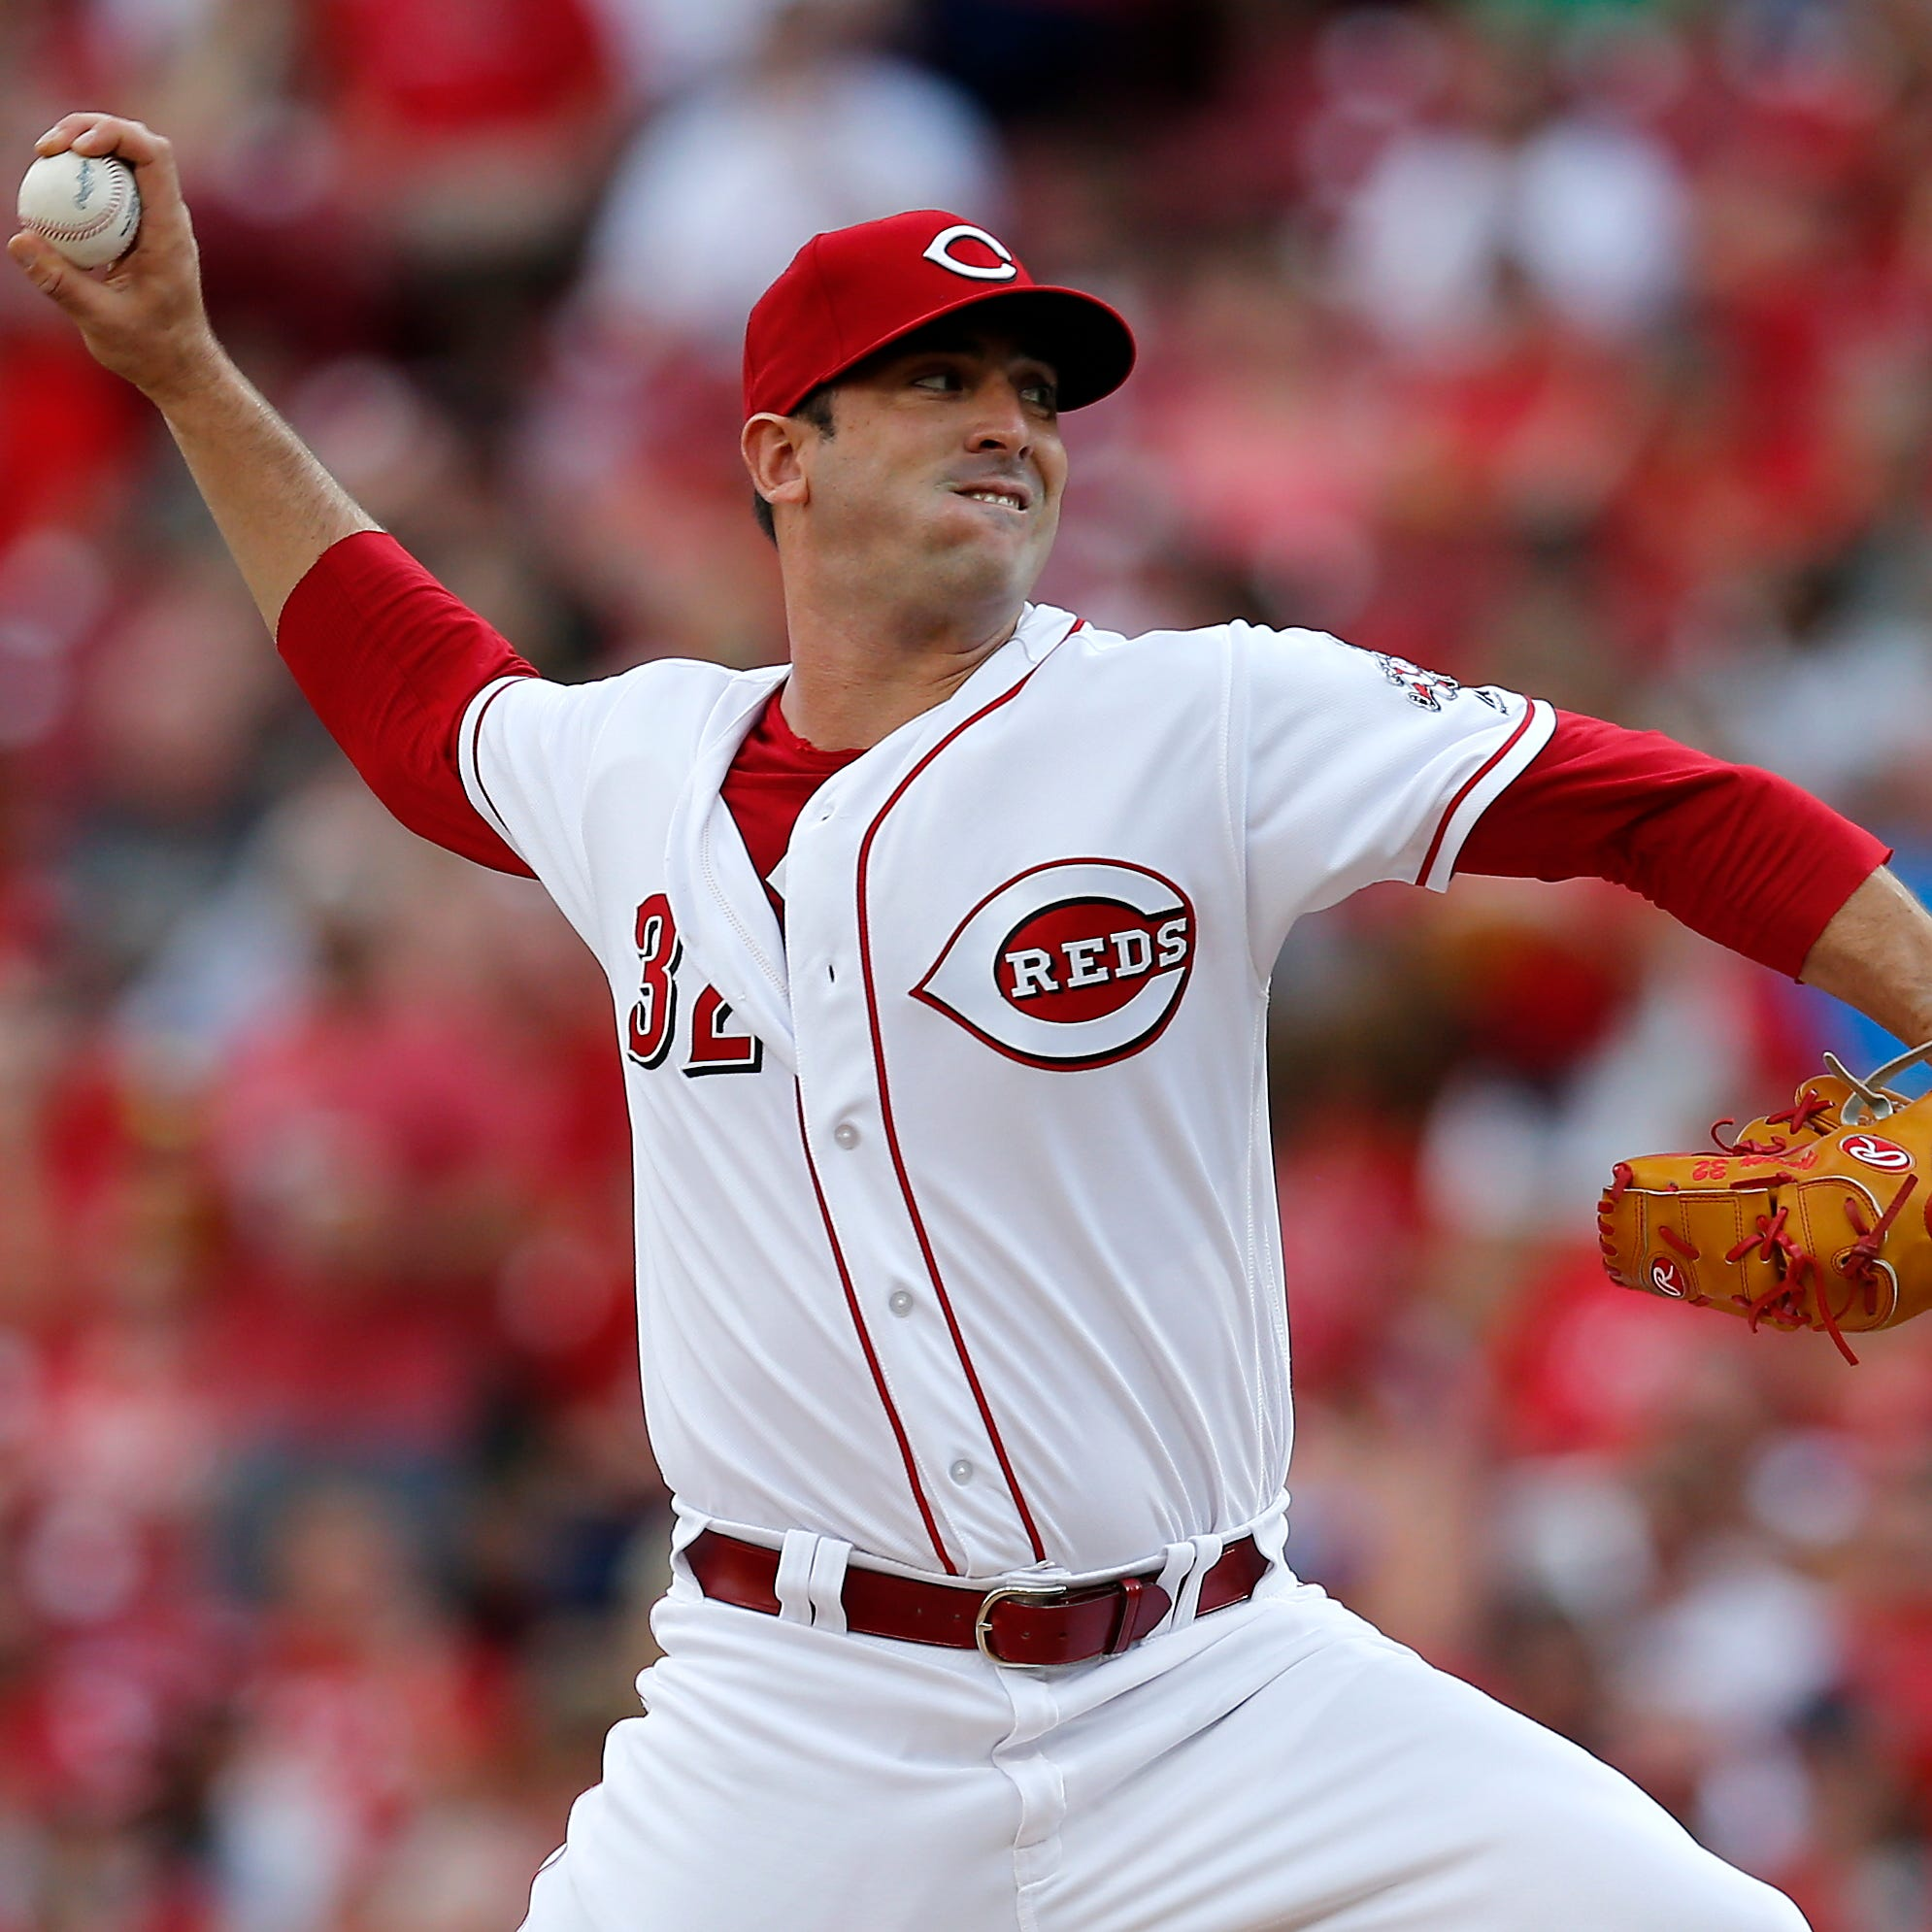 RedsXtra: Predictions for '19 are impossible at this point and will be until we see which pitchers the Reds add